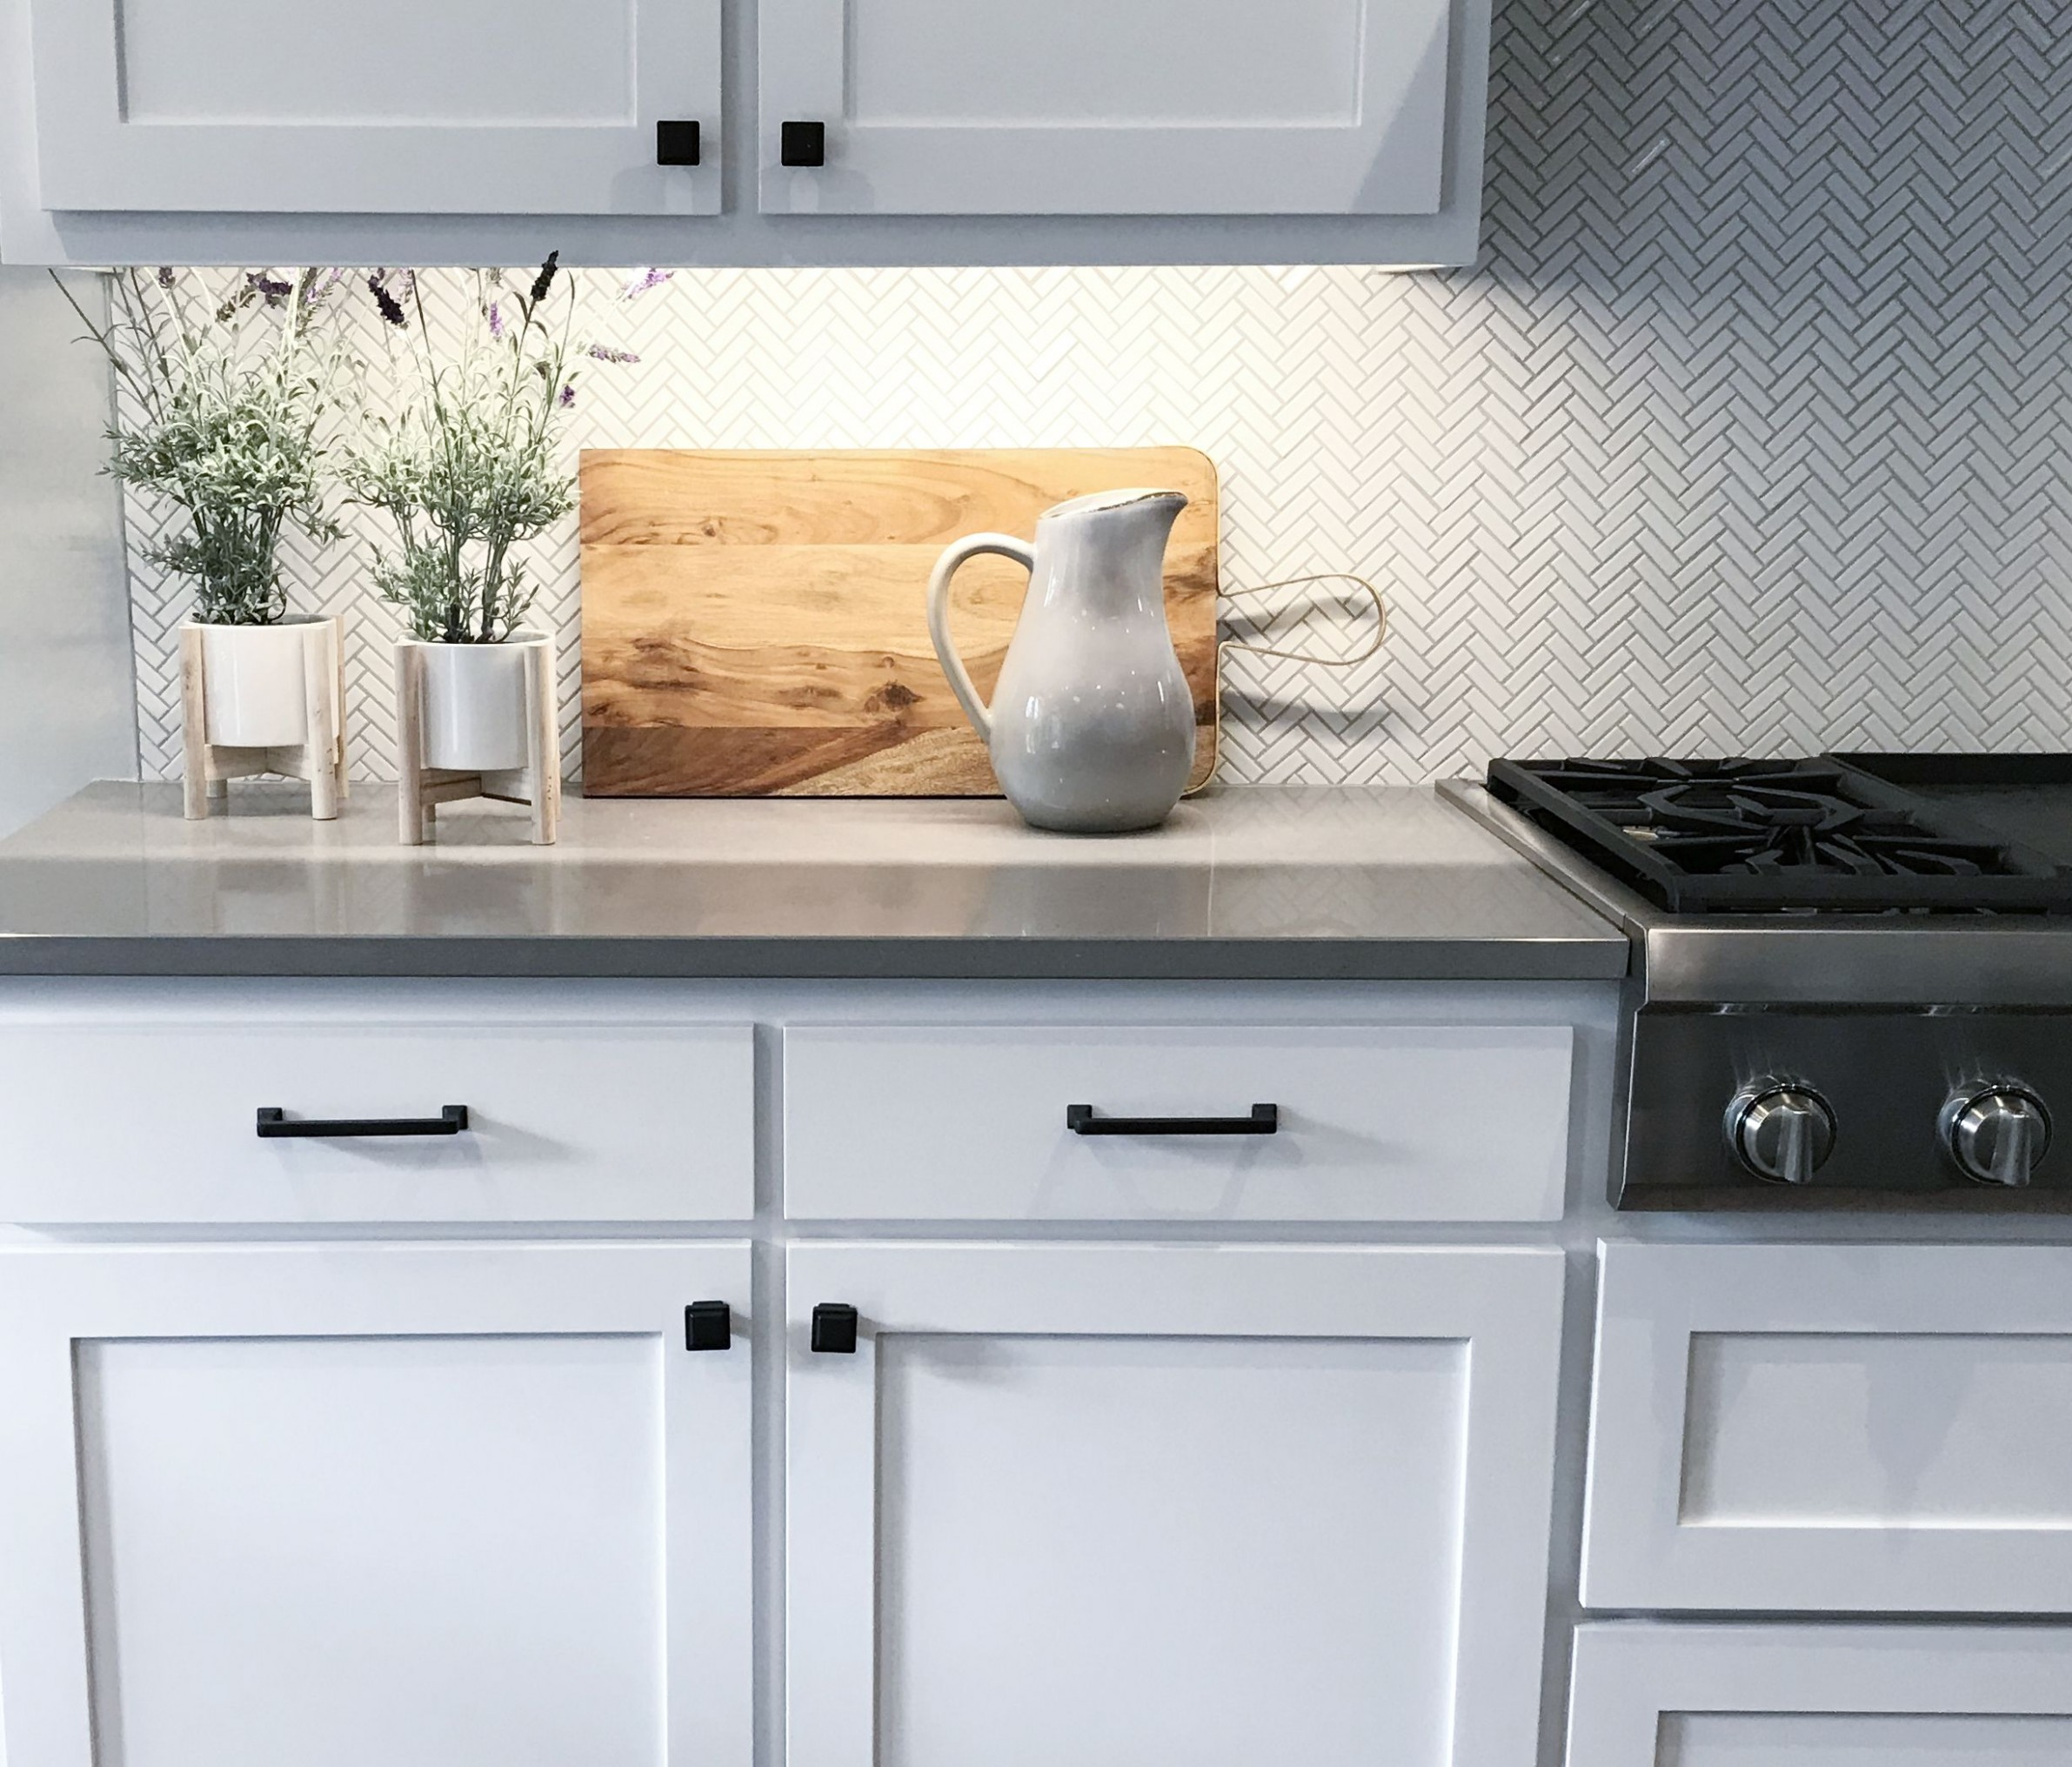 Installing New Cabinet Handles - Installing Knobs And Pulls On Kitchen Cabinets